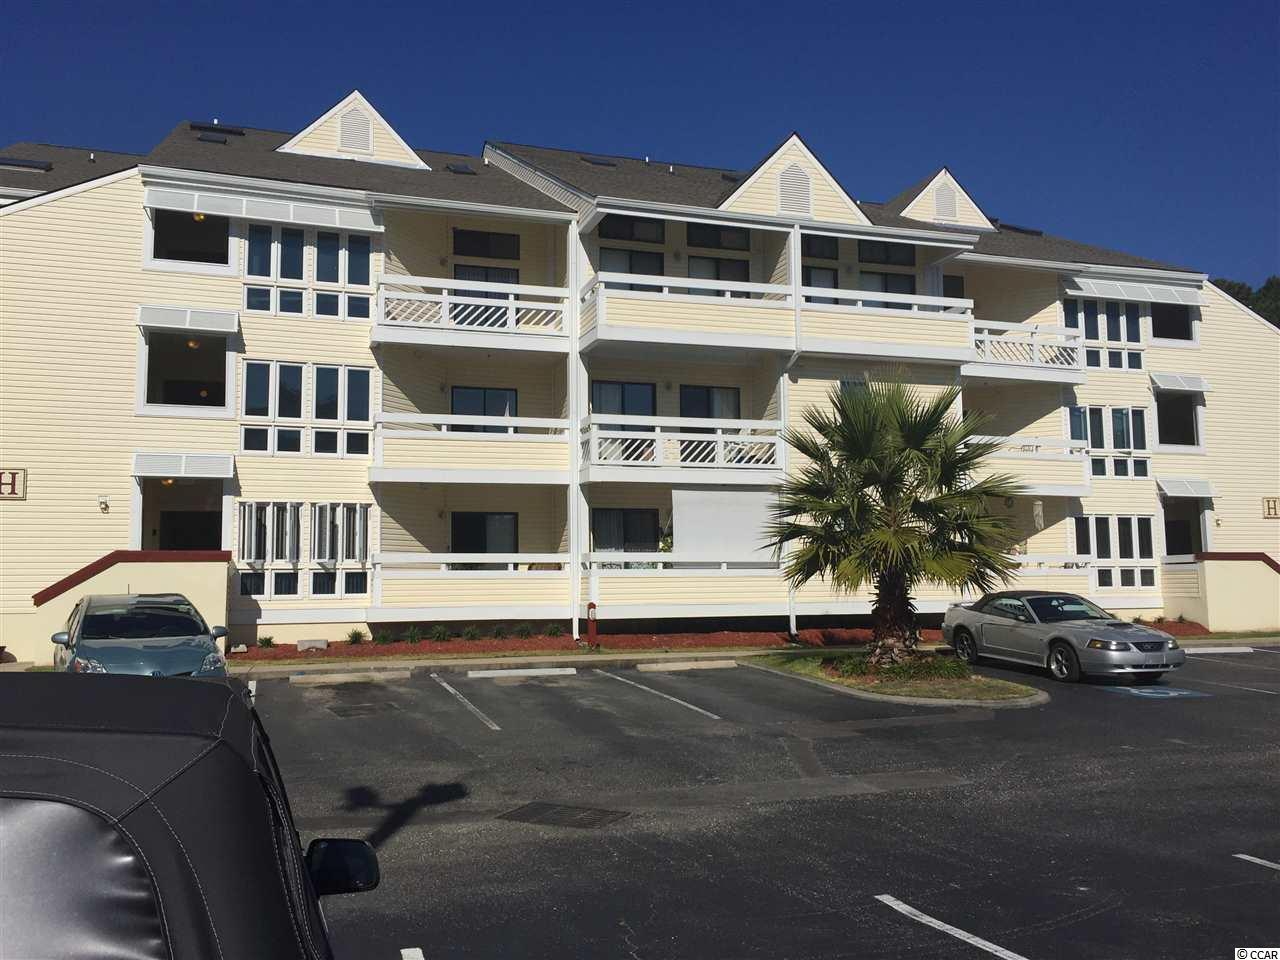 Condo / Townhome / Villa for Sale at 1100 Possum Trot Road 1100 Possum Trot Road North Myrtle Beach, South Carolina 29582 United States